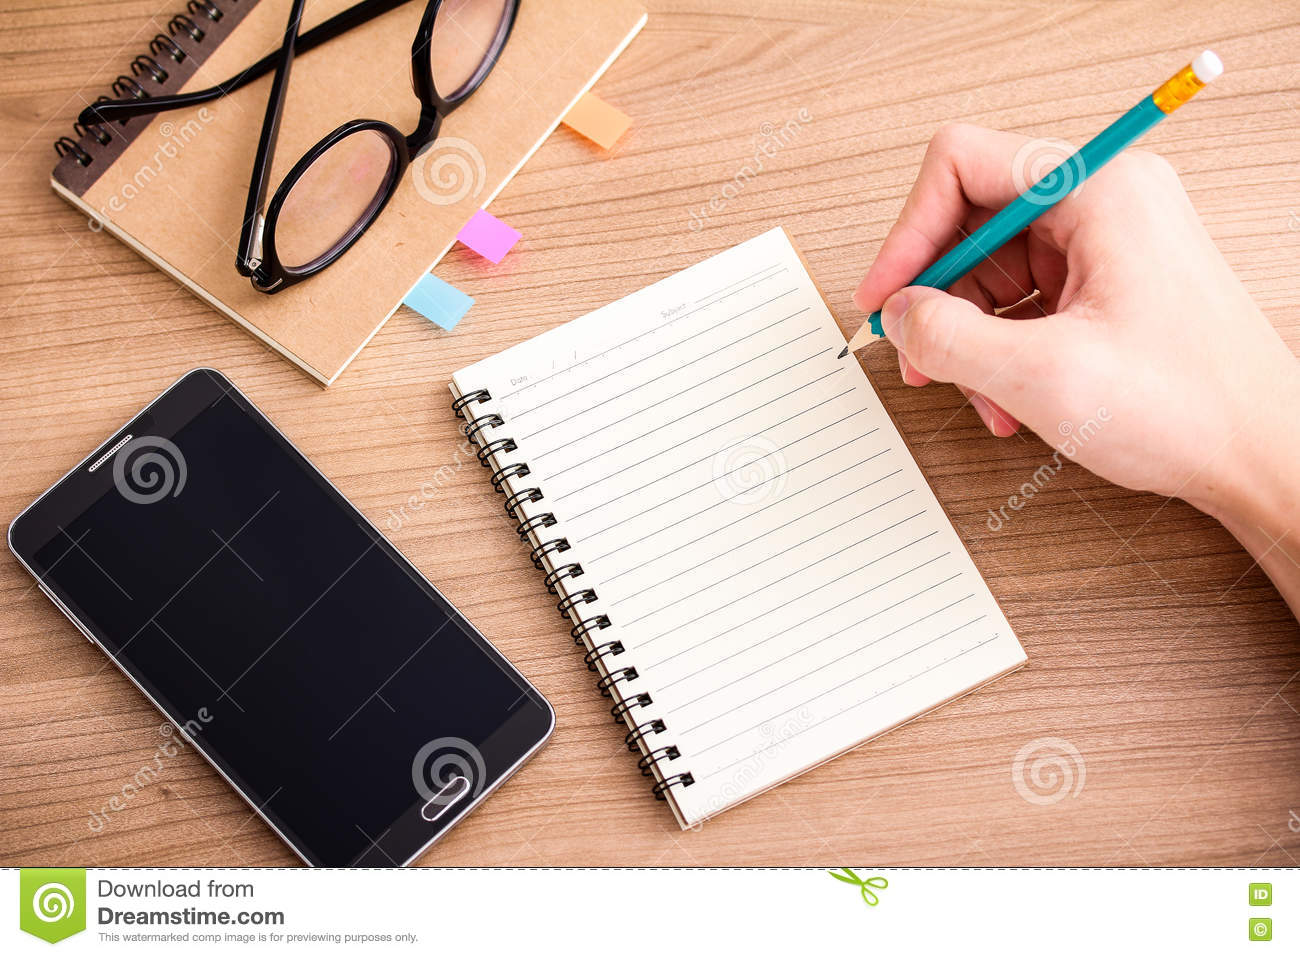 writing a journal stock photo image of creative blank 79565886